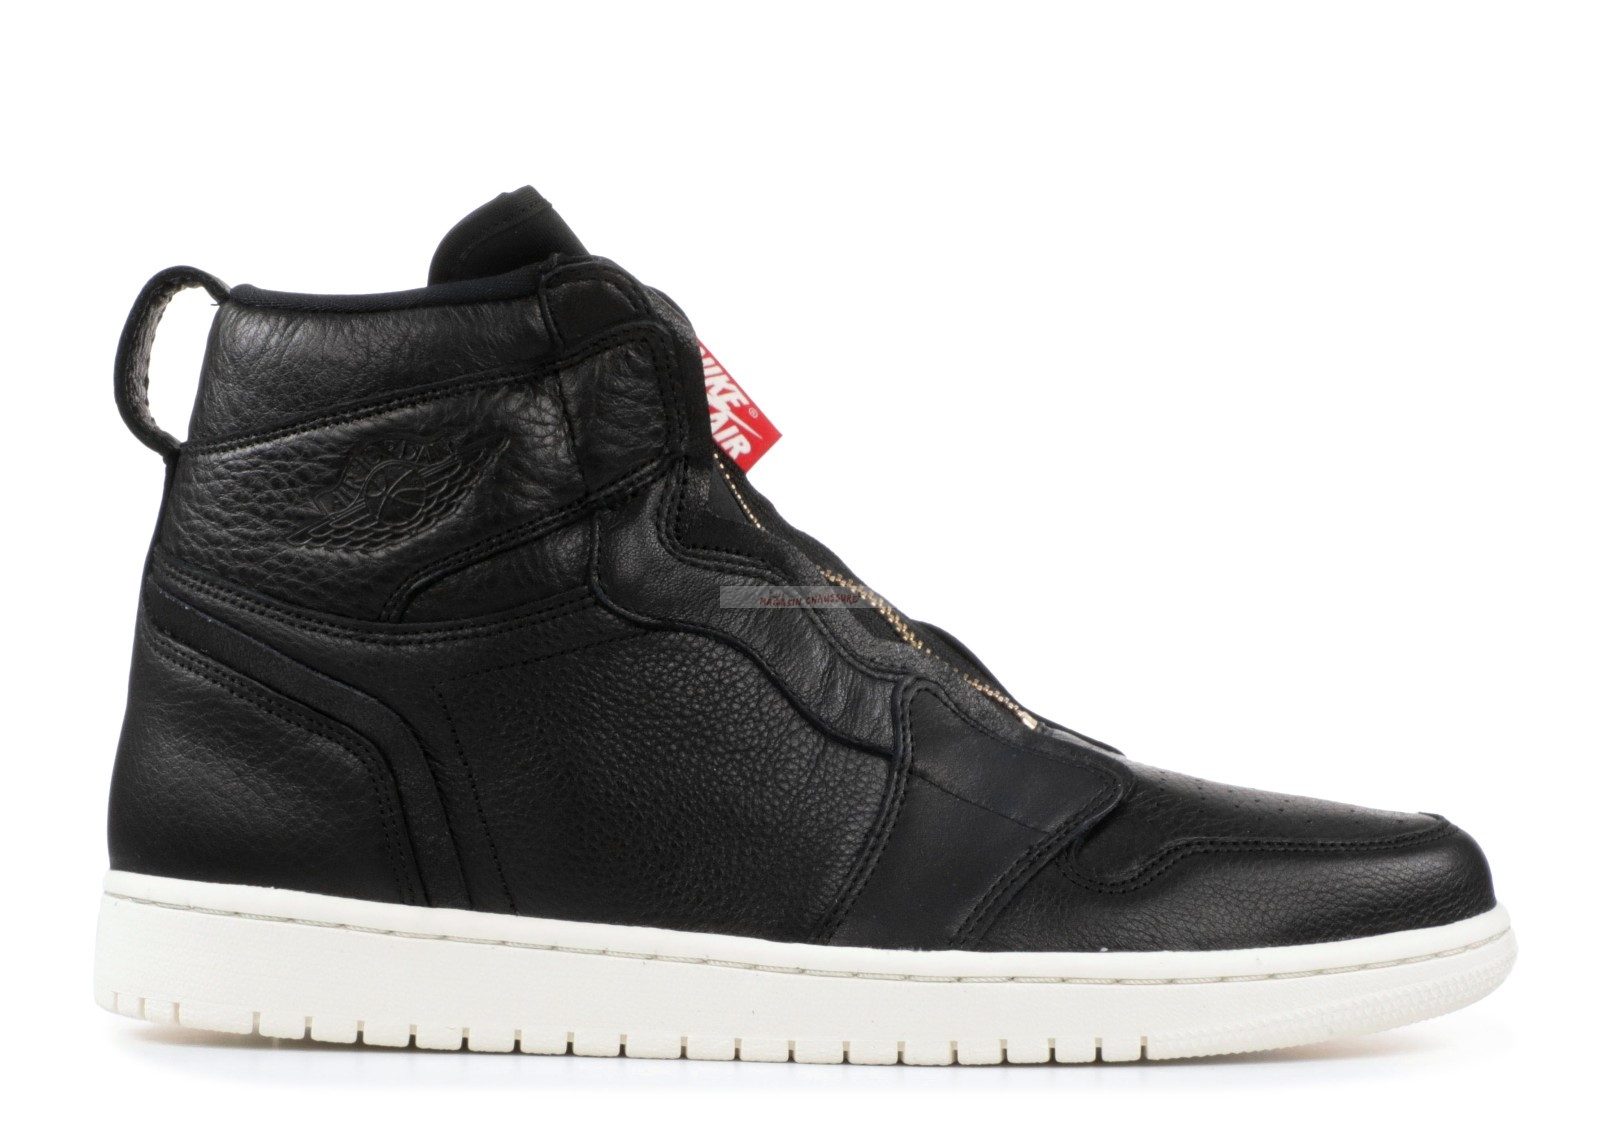 Air Jordan 1 - Femme High Zip Noir (aq3742-016) Chaussure de Basket